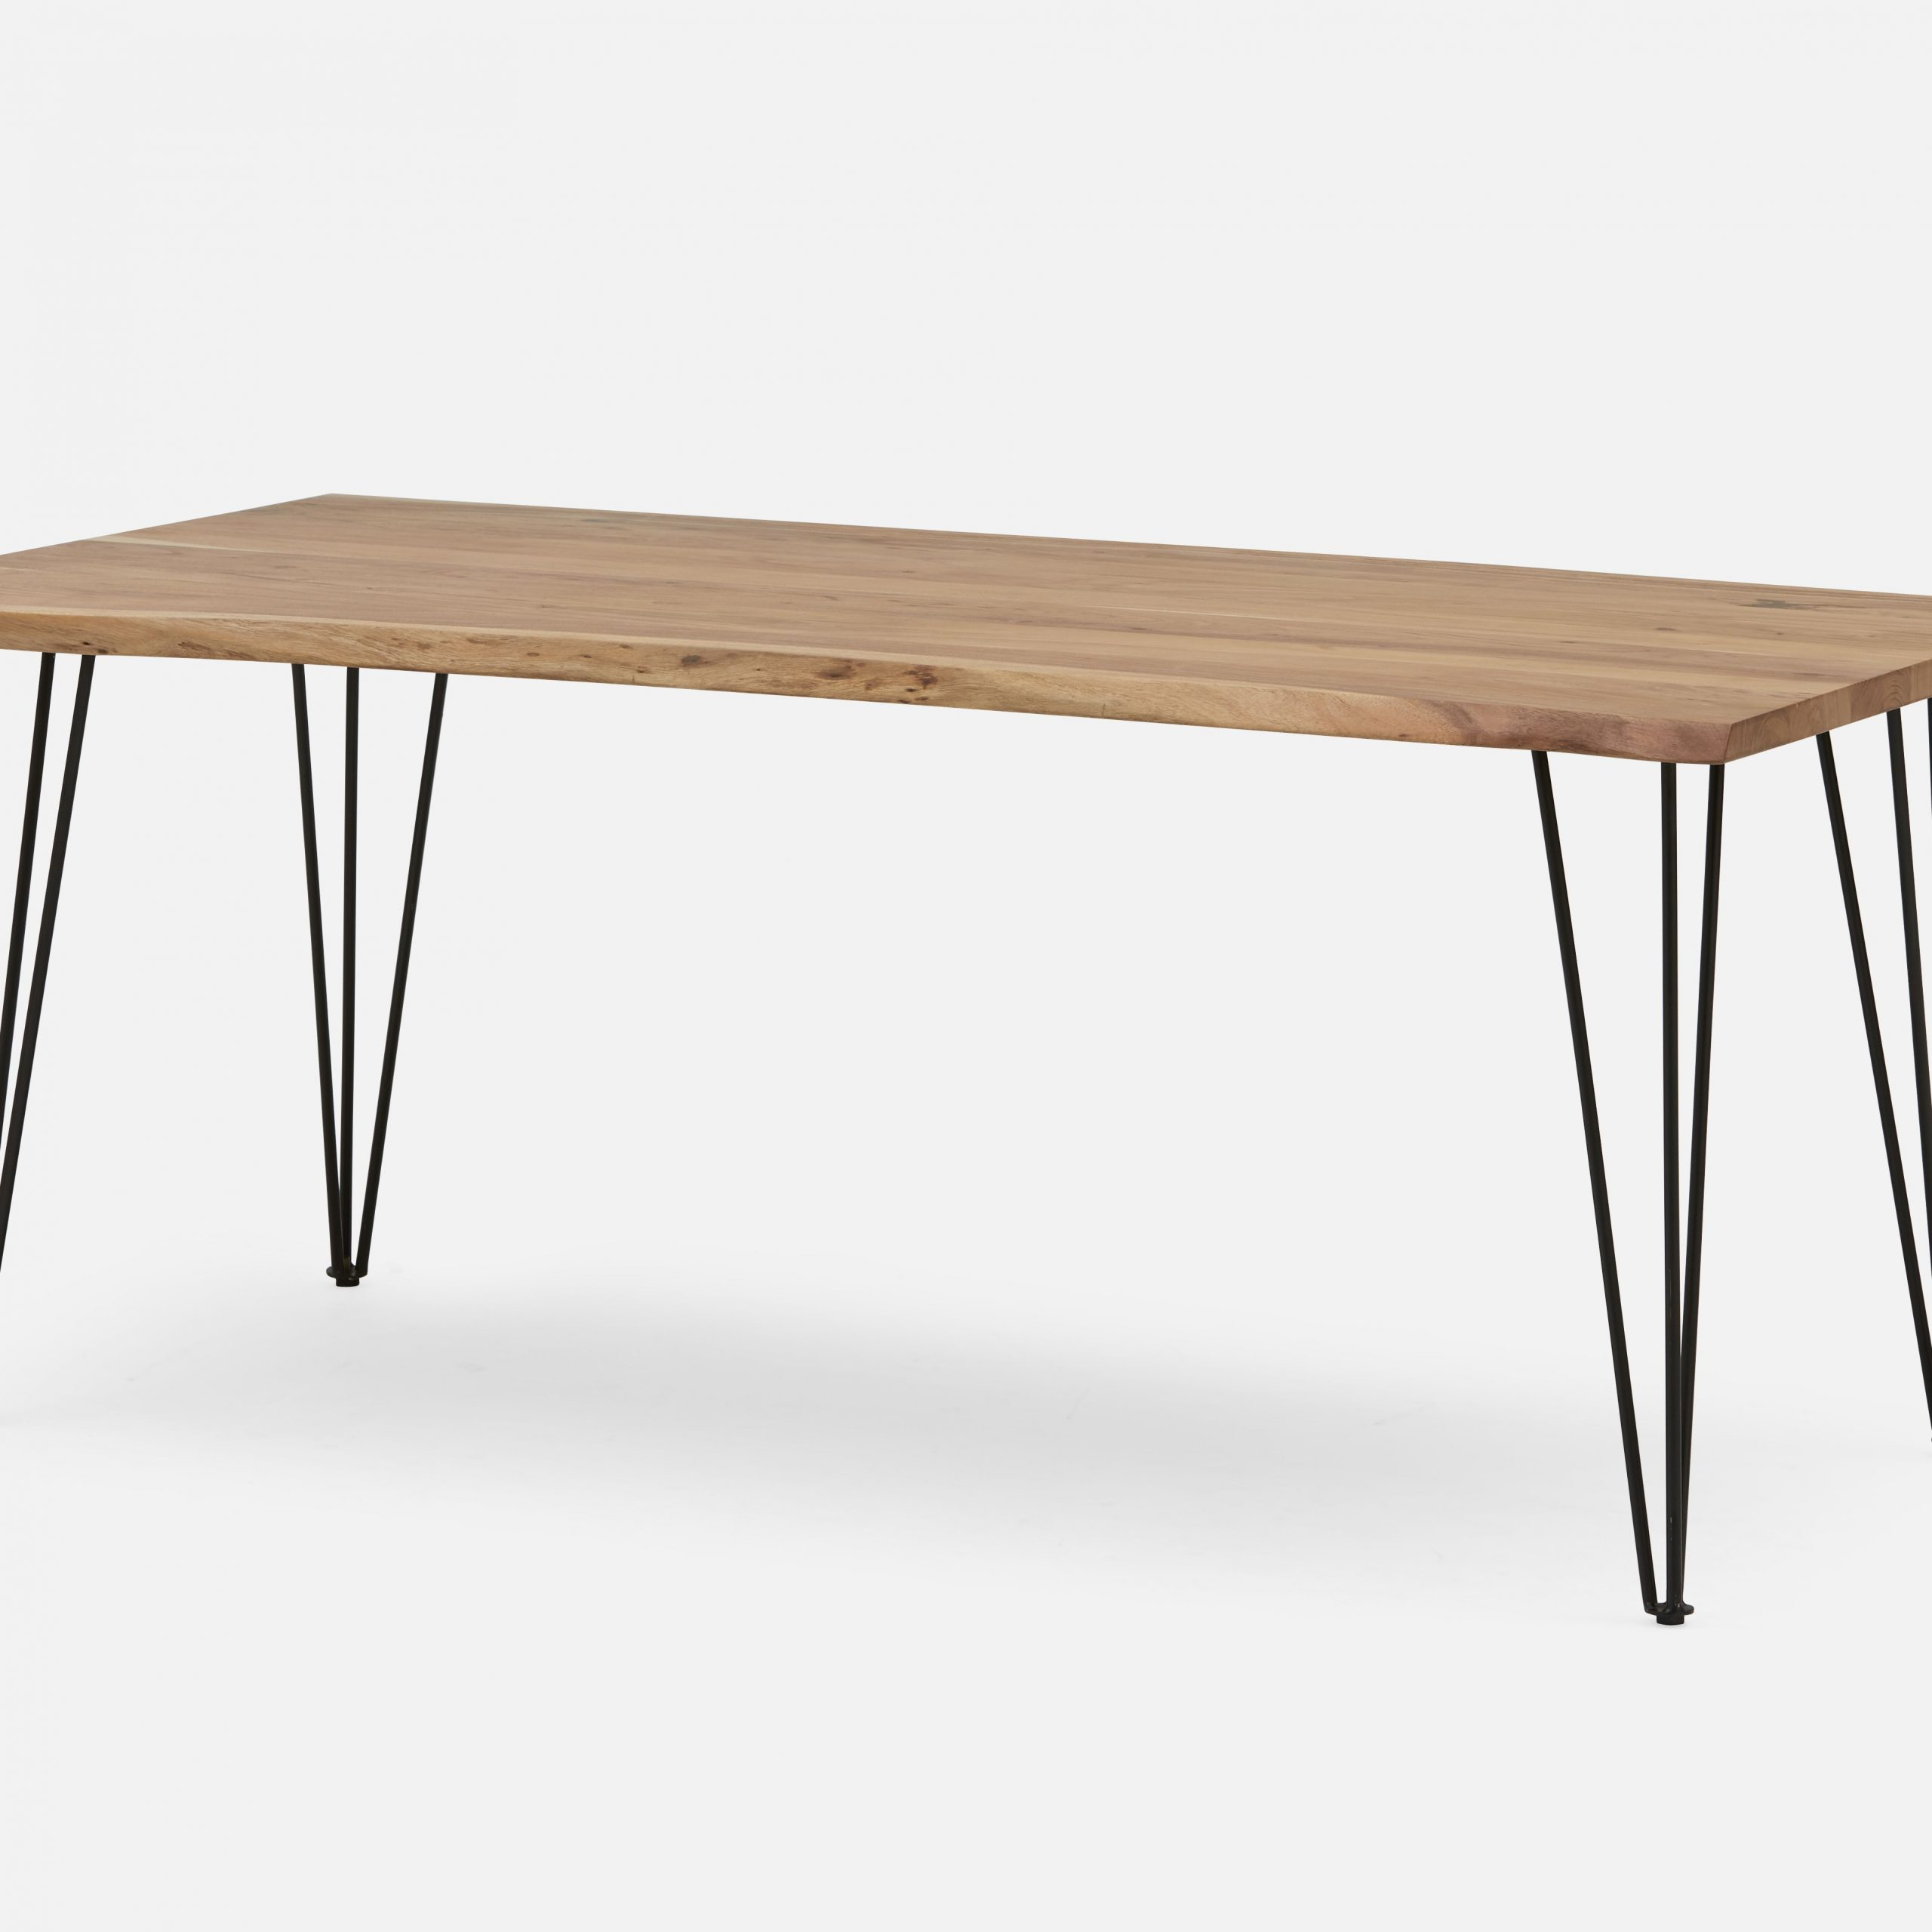 Trendy Solid Acacia Wood Dining Tables In Reno Solid Acacia Wood Dining Table 180Cm (71'') (Gallery 2 of 30)